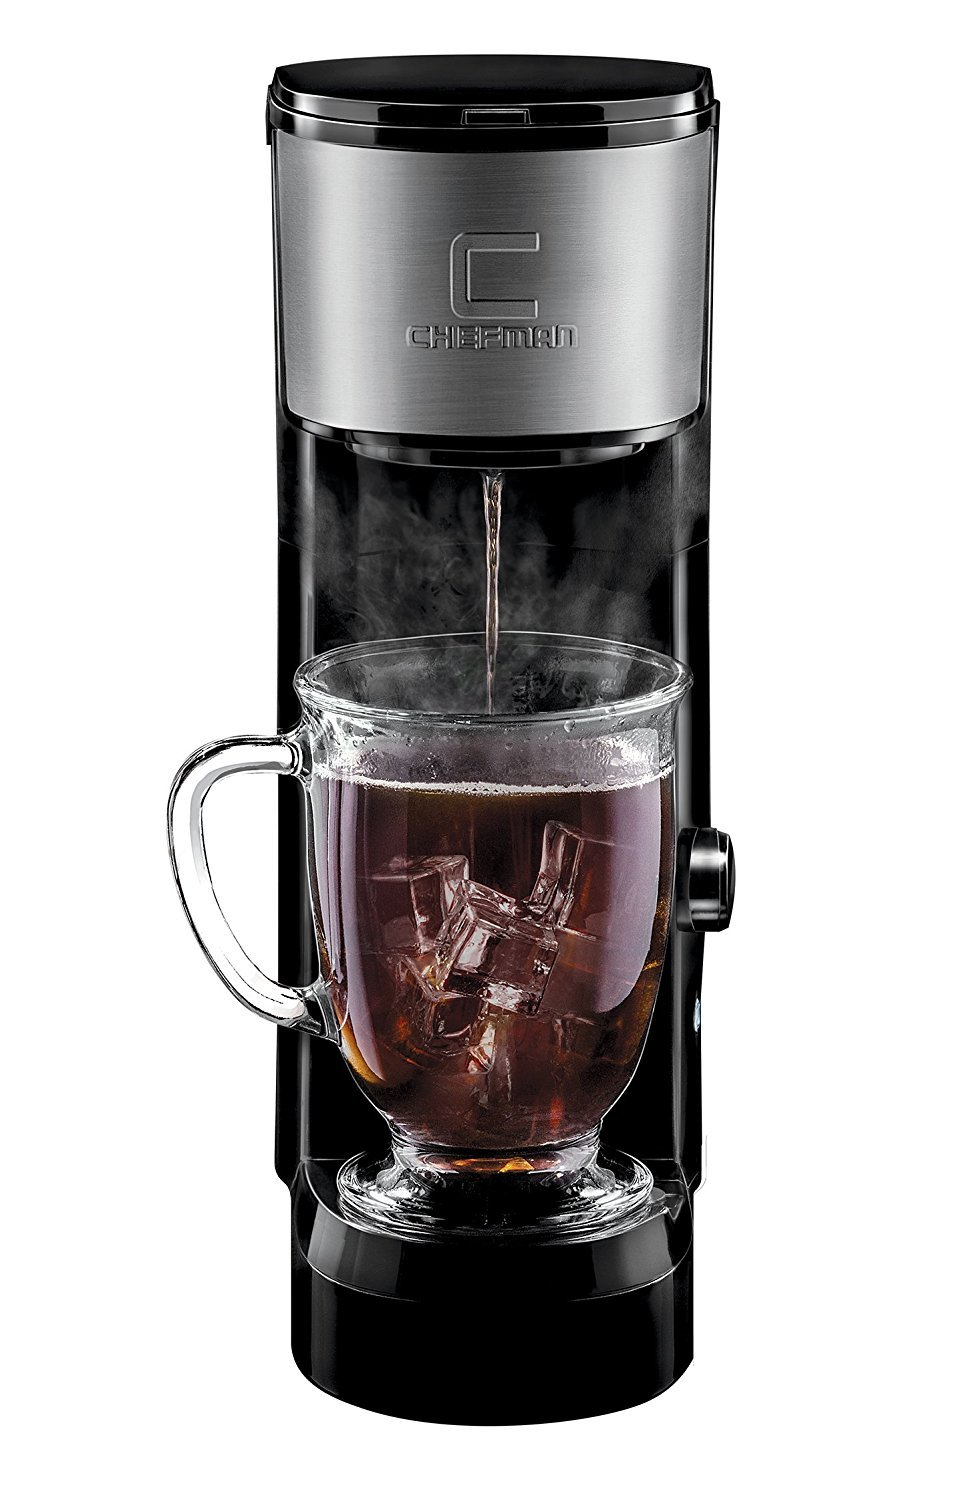 Chefman RJ14-SKG-IR Maker K-Cup Instabrew Brewer-Free Filter Included for Use with Coffee Grounds Small Footprint Single Serve-Mug, Instant Reboil, Black